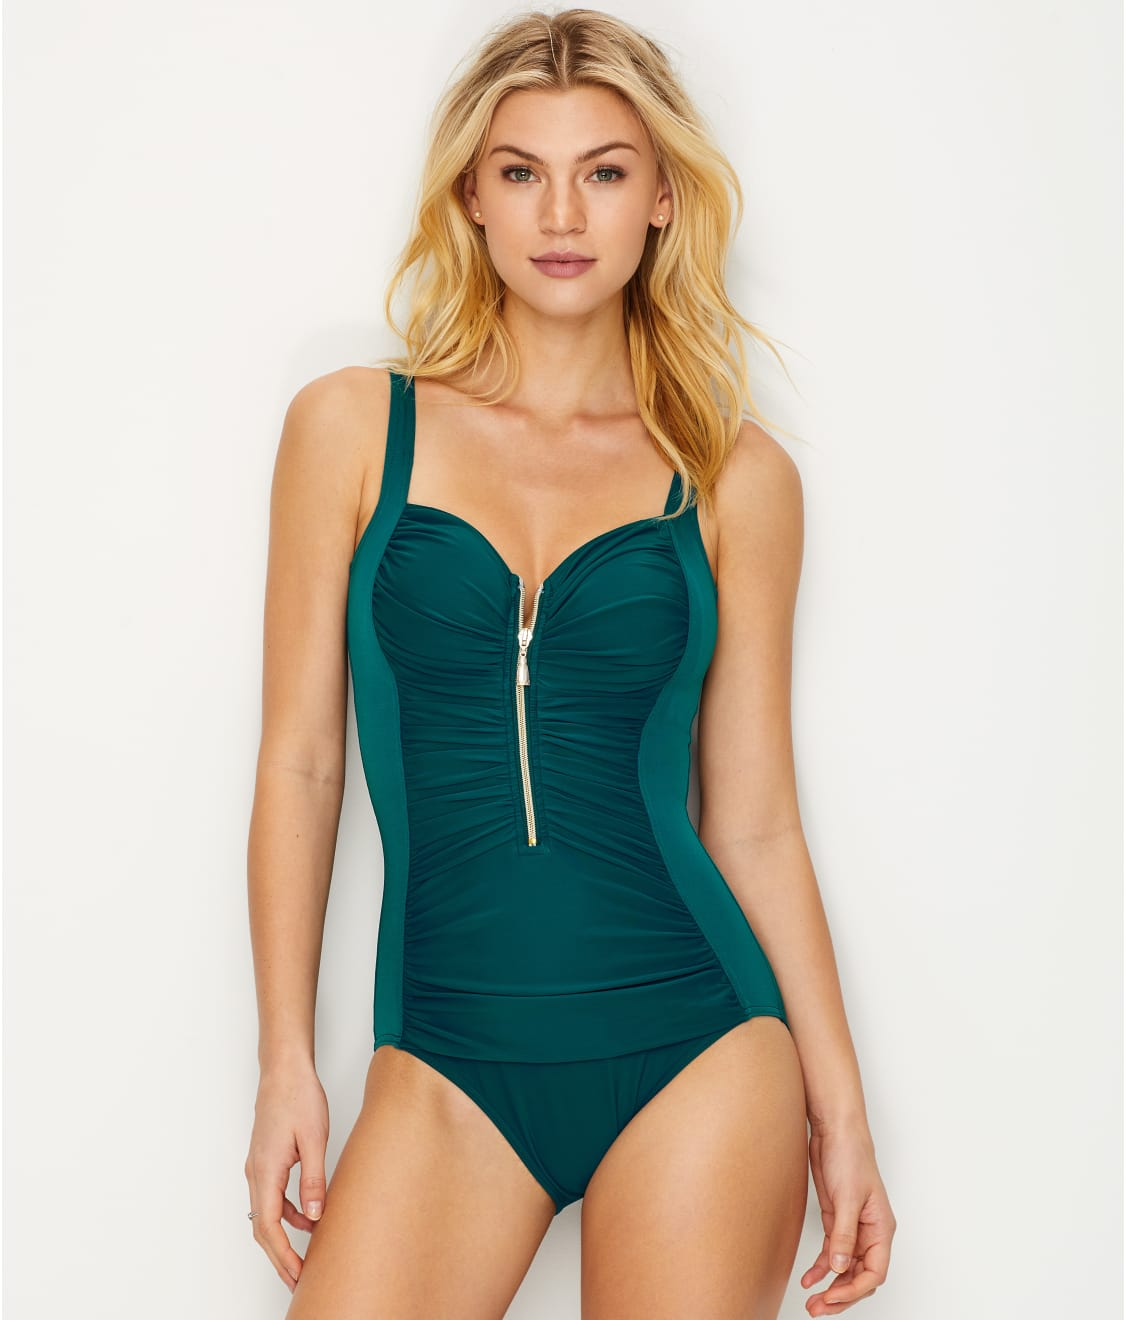 96d96a04a88 Miraclesuit So Riche Zip Code Wire-Free One-Piece